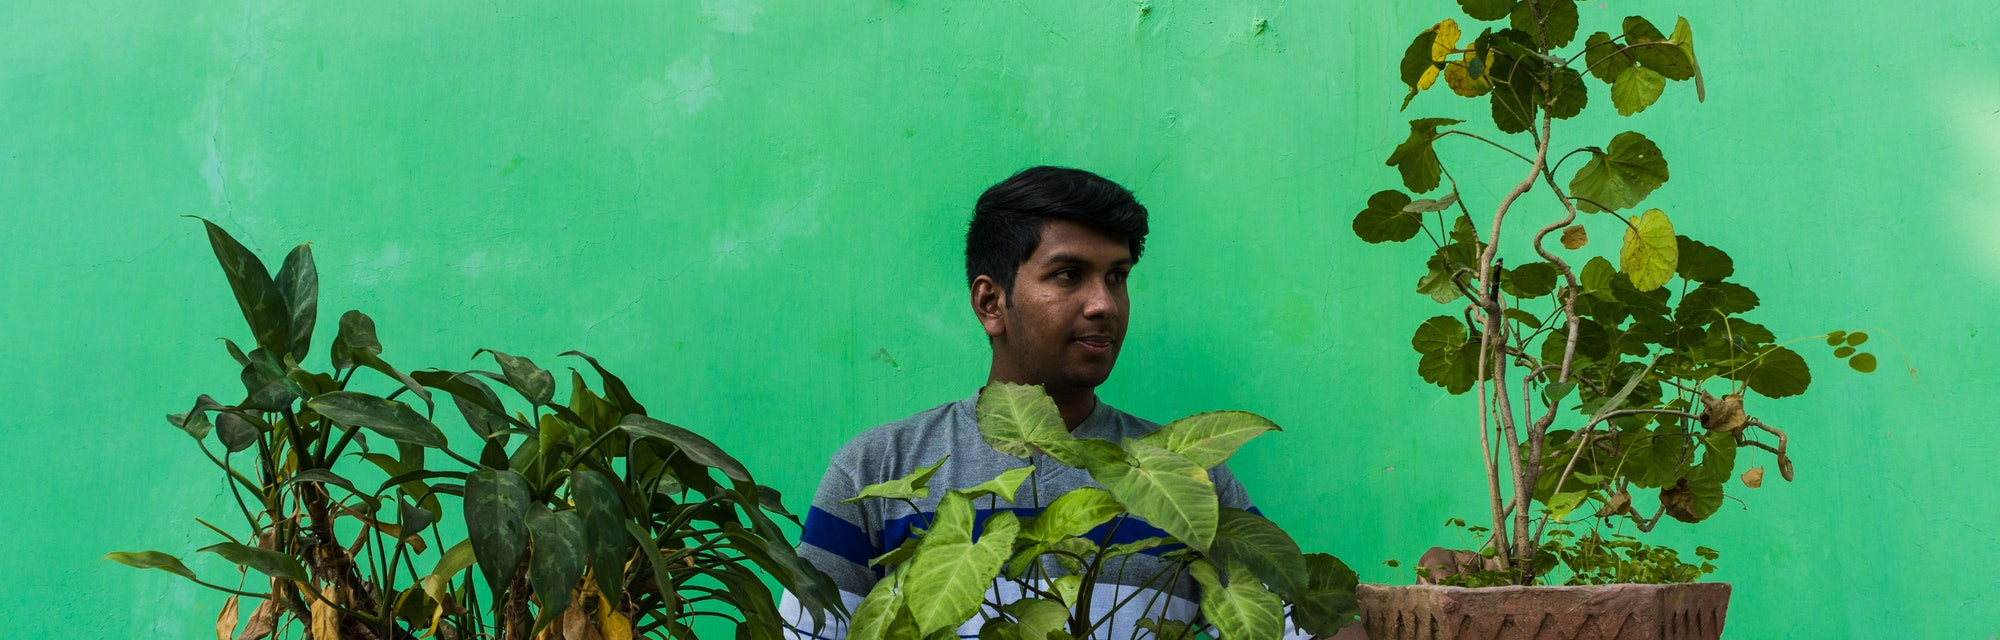 Adult man with ivy plant,house plant and Wood sorrels doing home gardening. Man taking care of plants and feed them water.